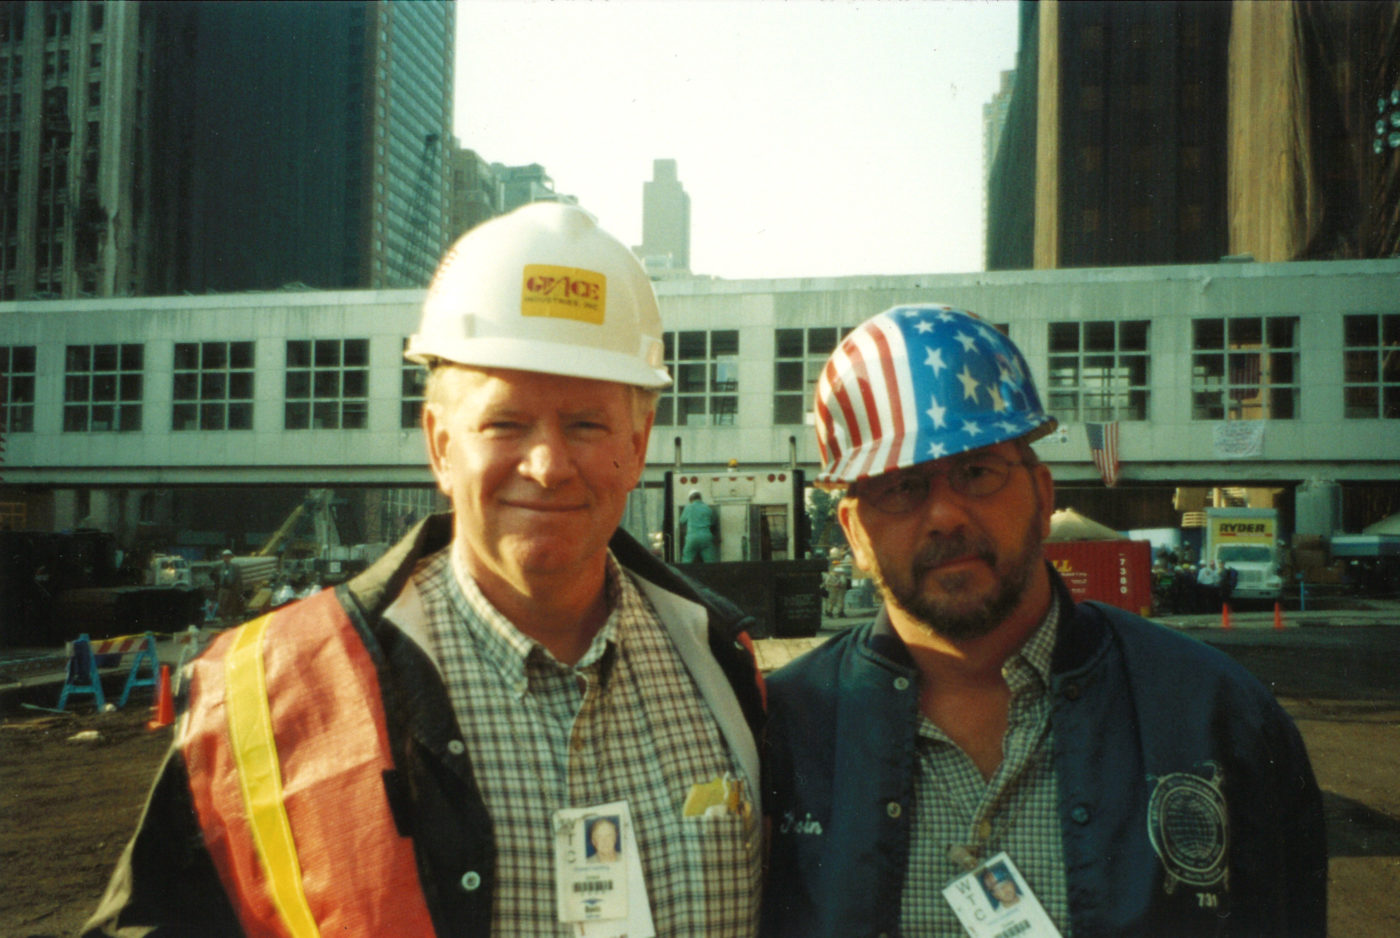 Two Unknown Workers Take a Photo at Ground Zero,, One is Wearing an American Flag Hard Hat